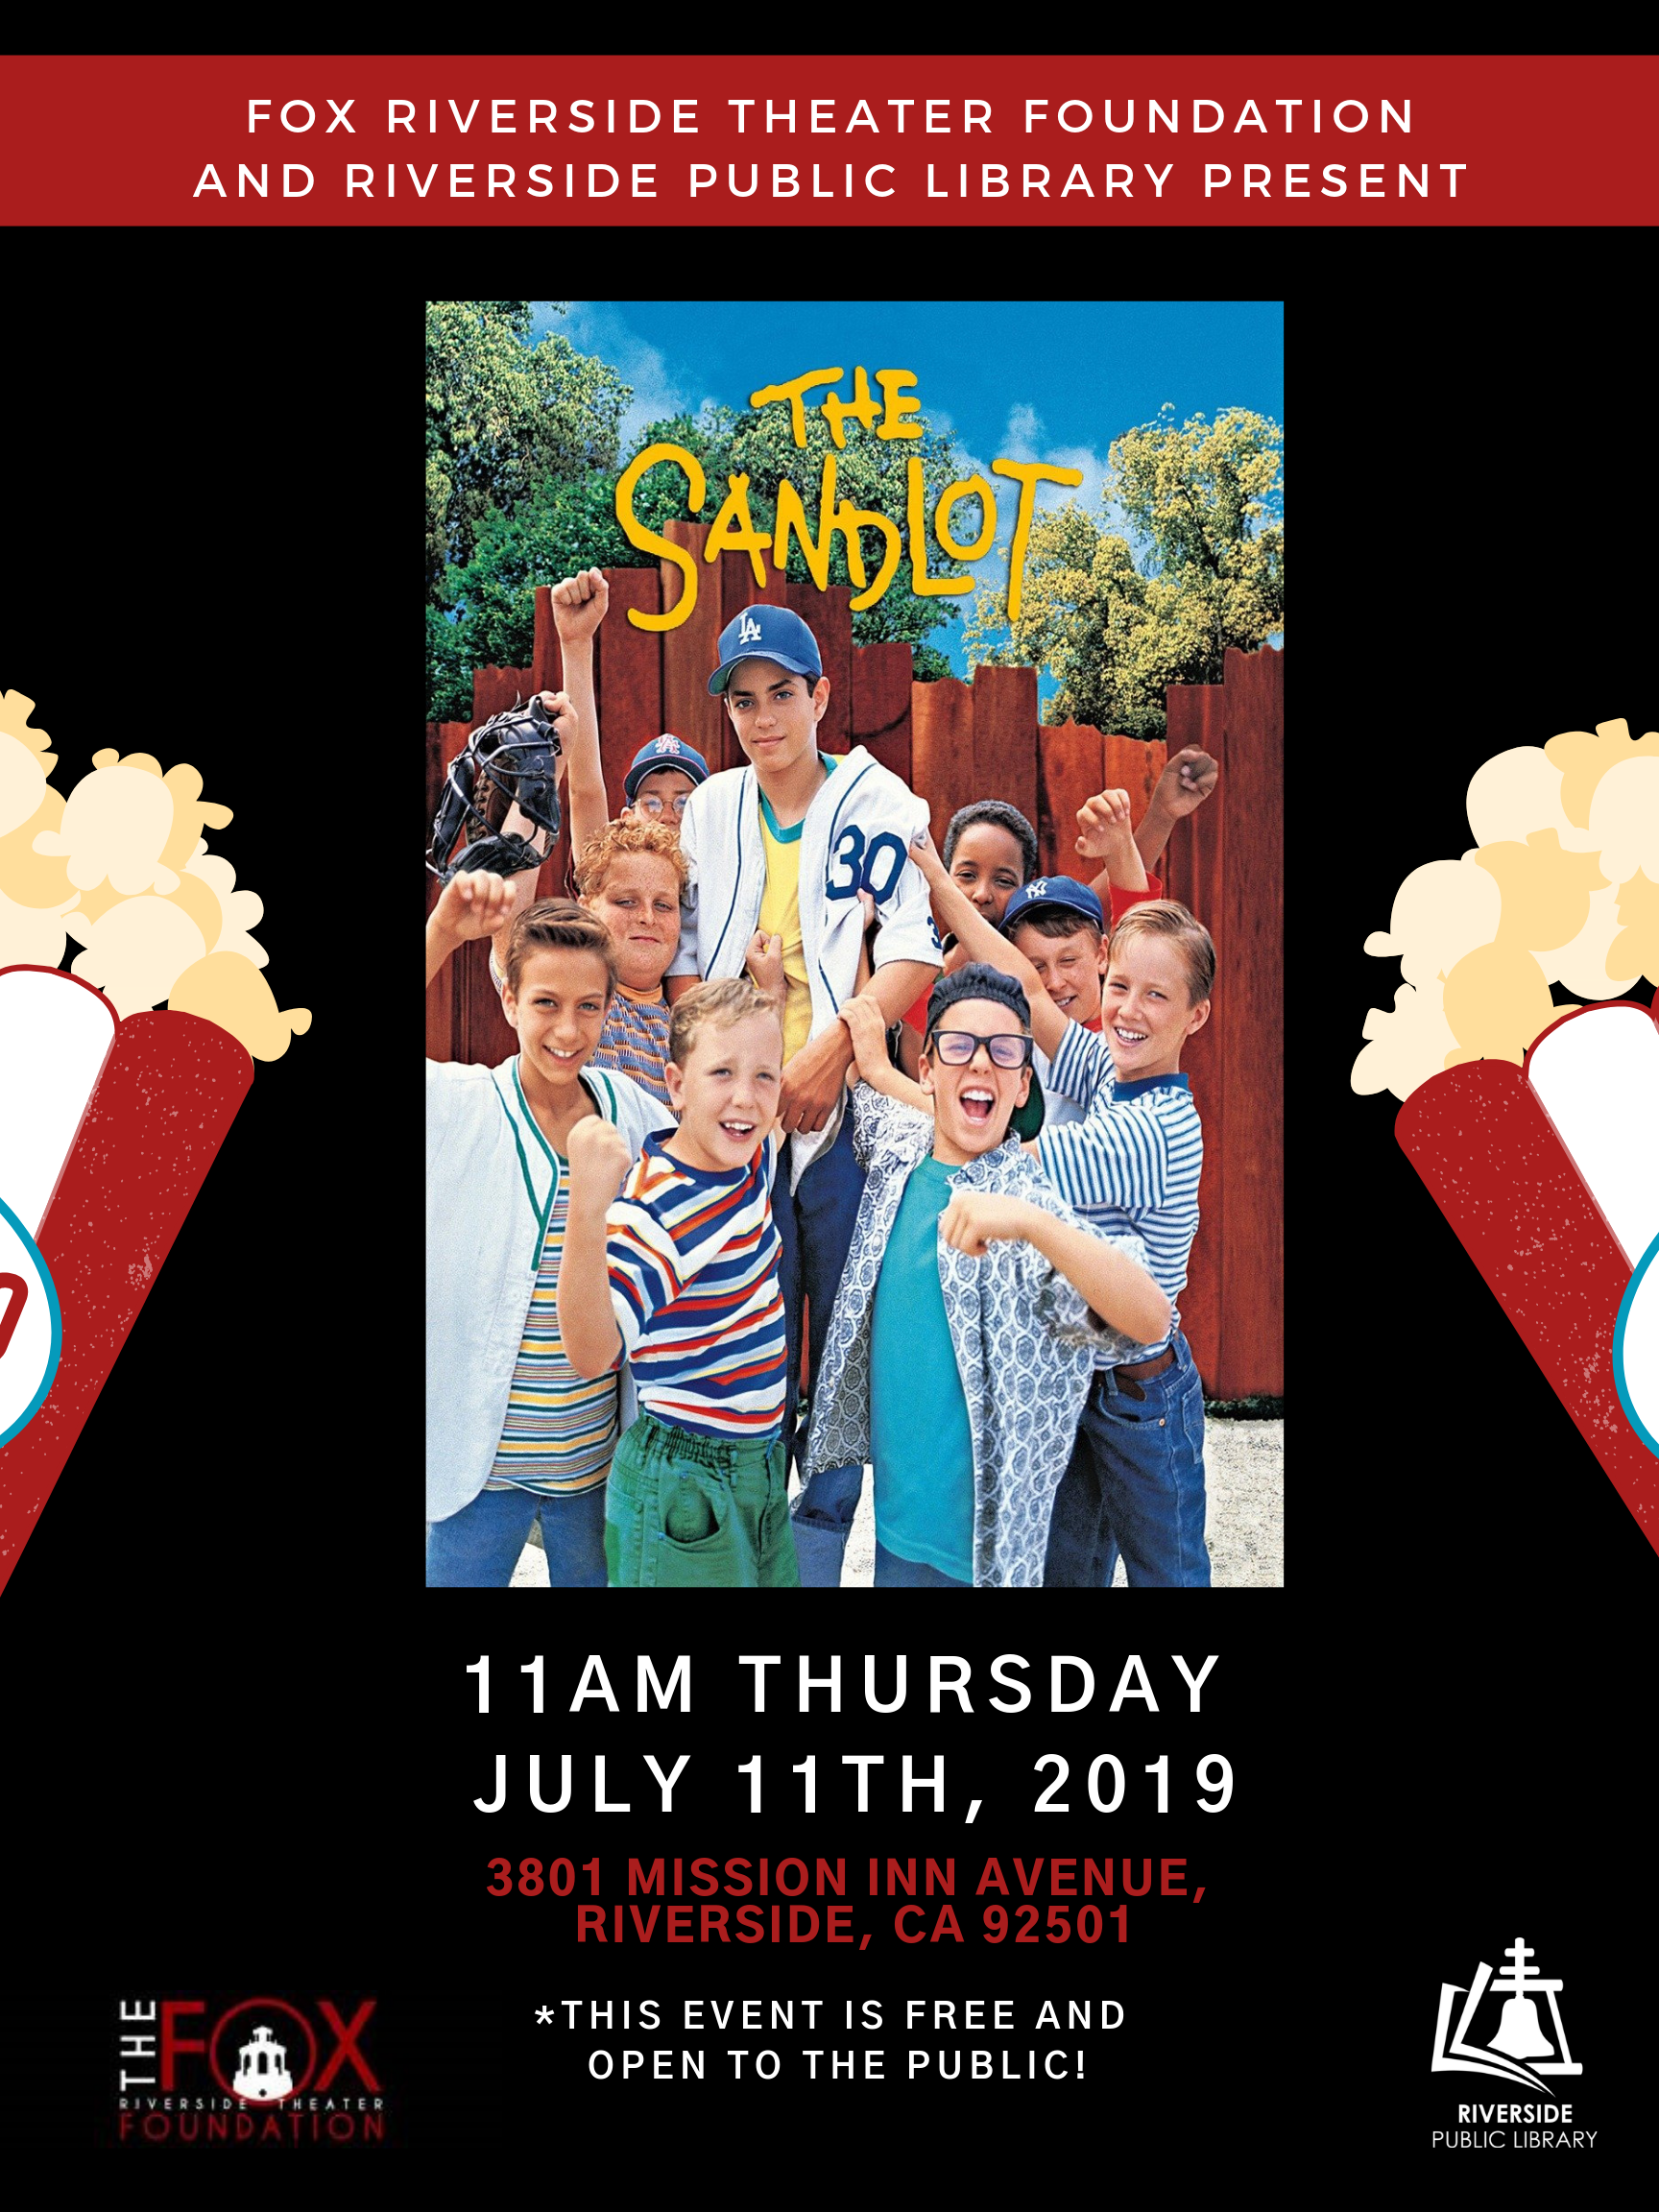 The Sandlot Movie: Presented by Fox Riverside Theater